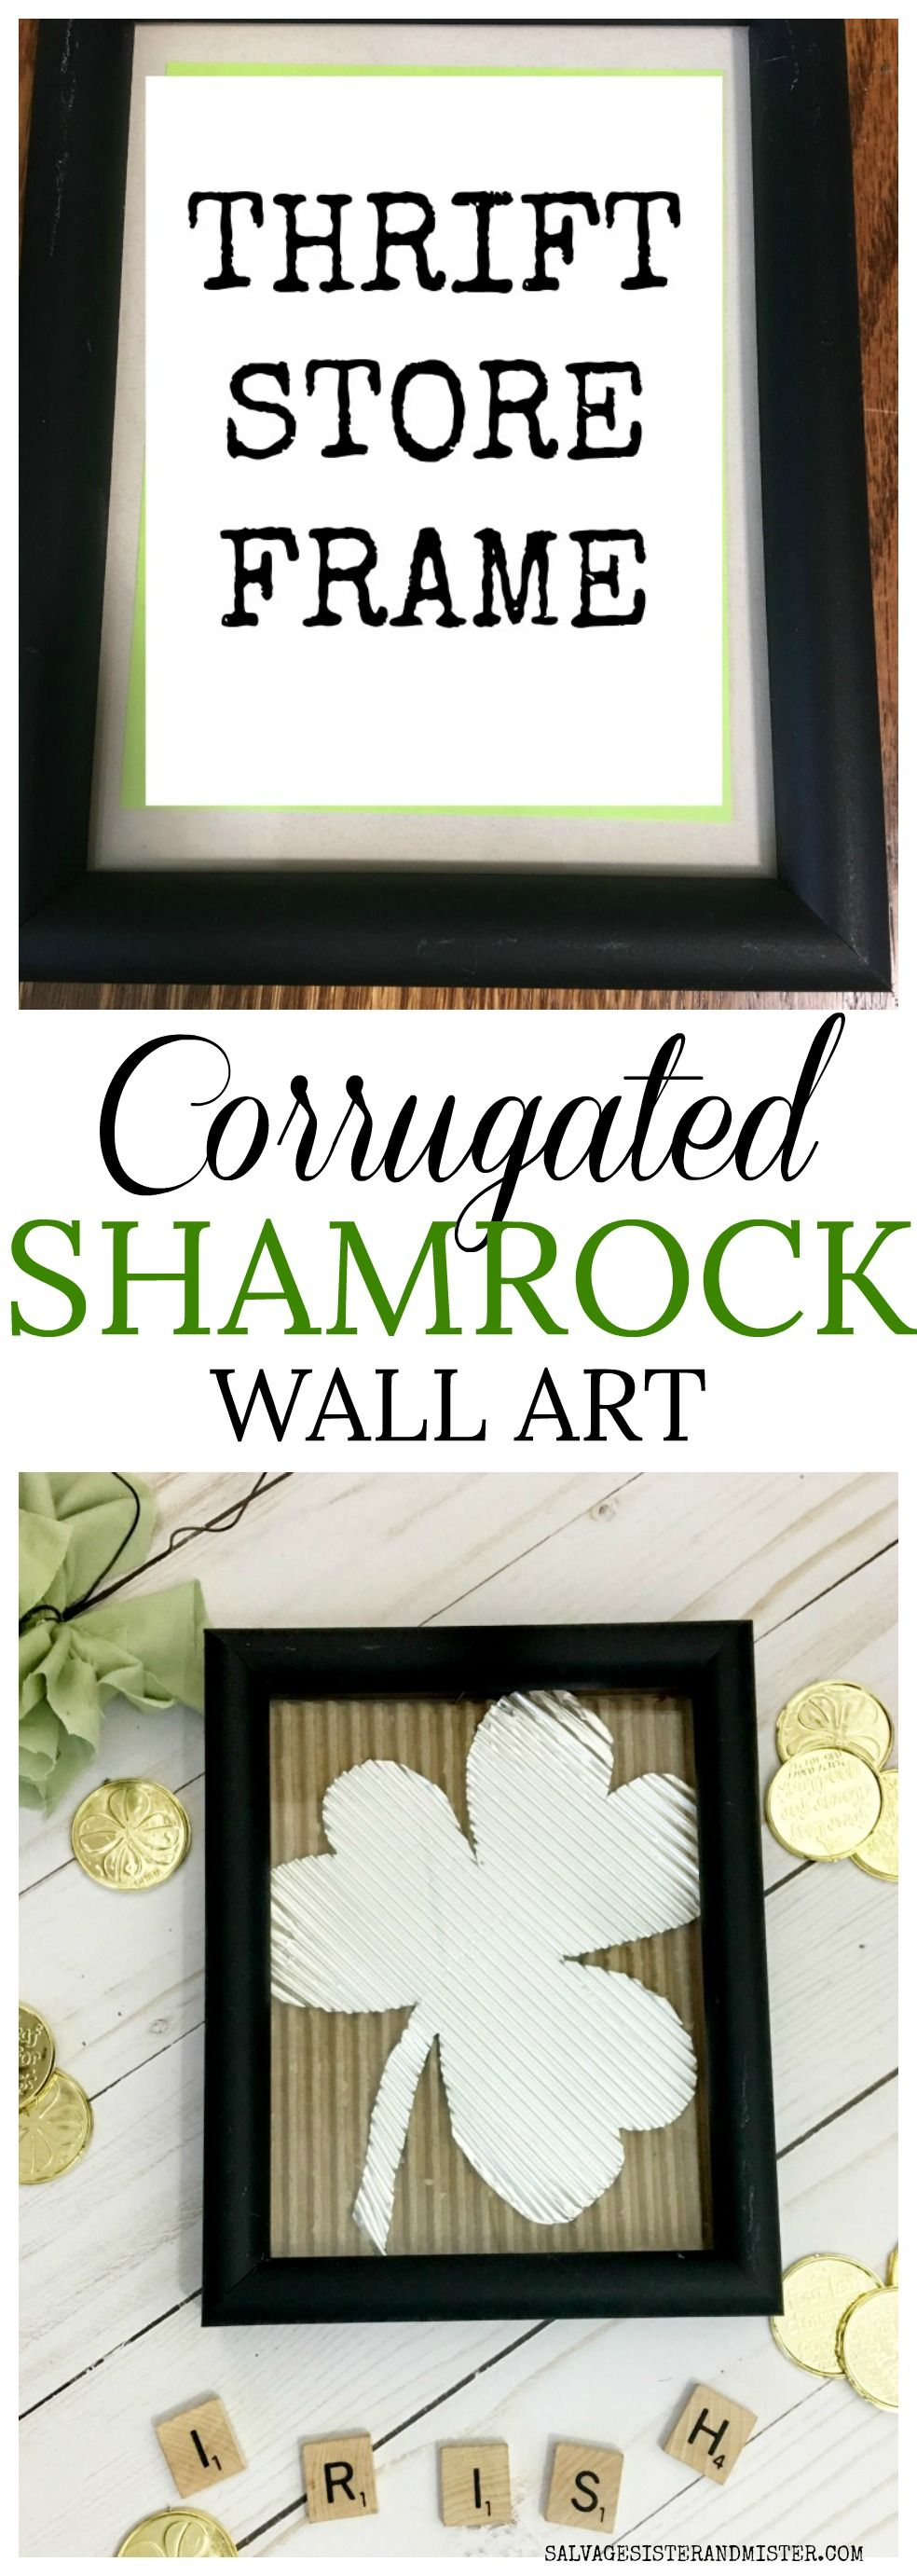 Corrugated DIY Shamrock Wall Art Thrift store crafts